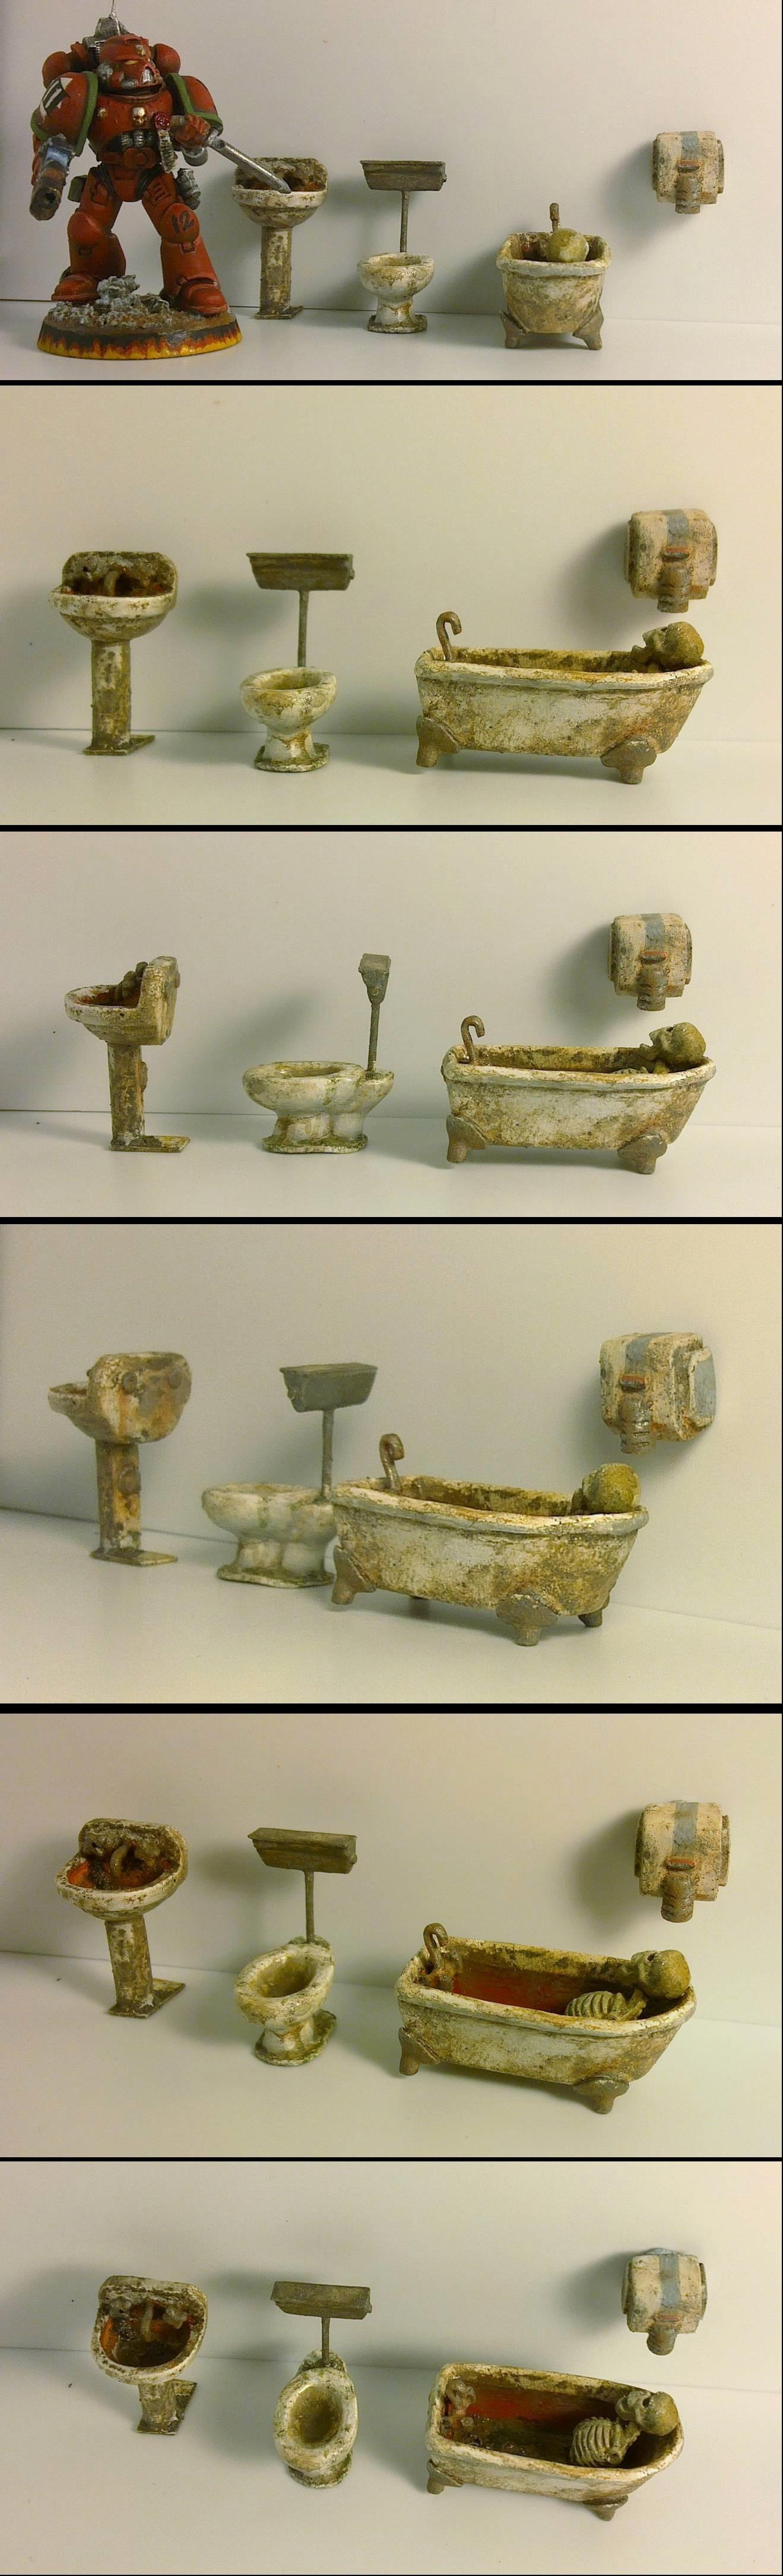 Bath, Bathroom, Dirty, Fallout, Fixture, Post-apocalyptic, Ruin, Sink, Terrain, Toilet